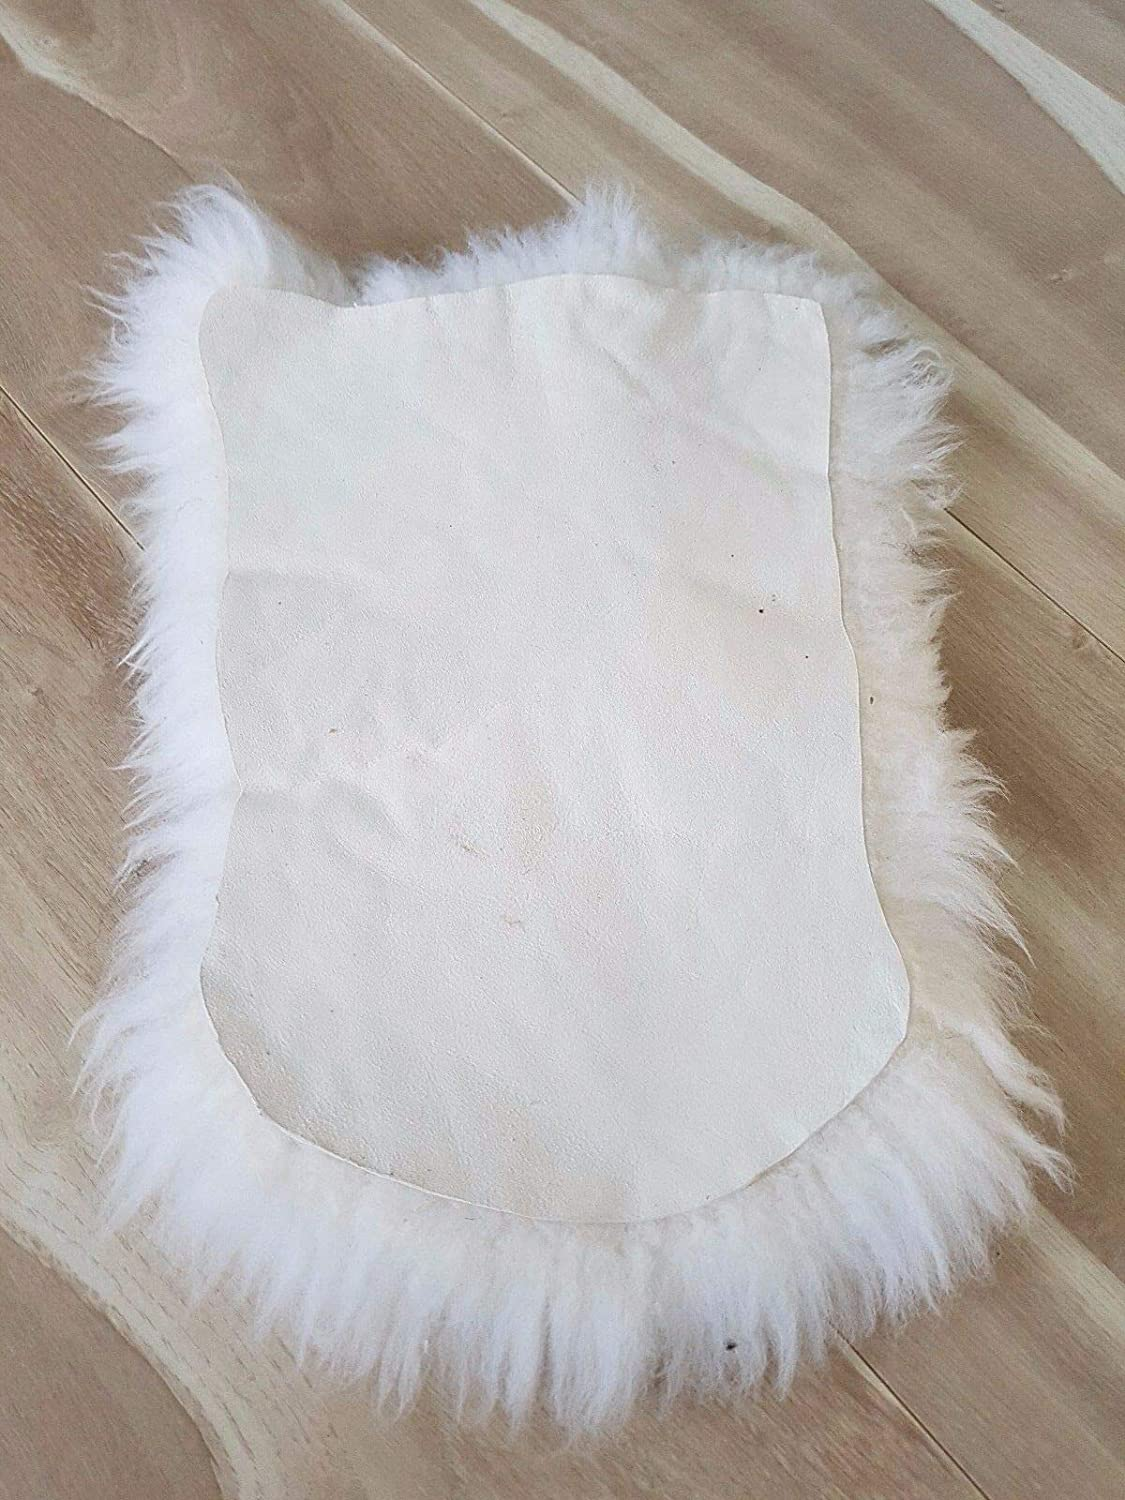 HappyFrog 100/% GENUINE SHEEPSKIN Chair Motorcycle Seat COVER with 2 Elastic Chrome Clips